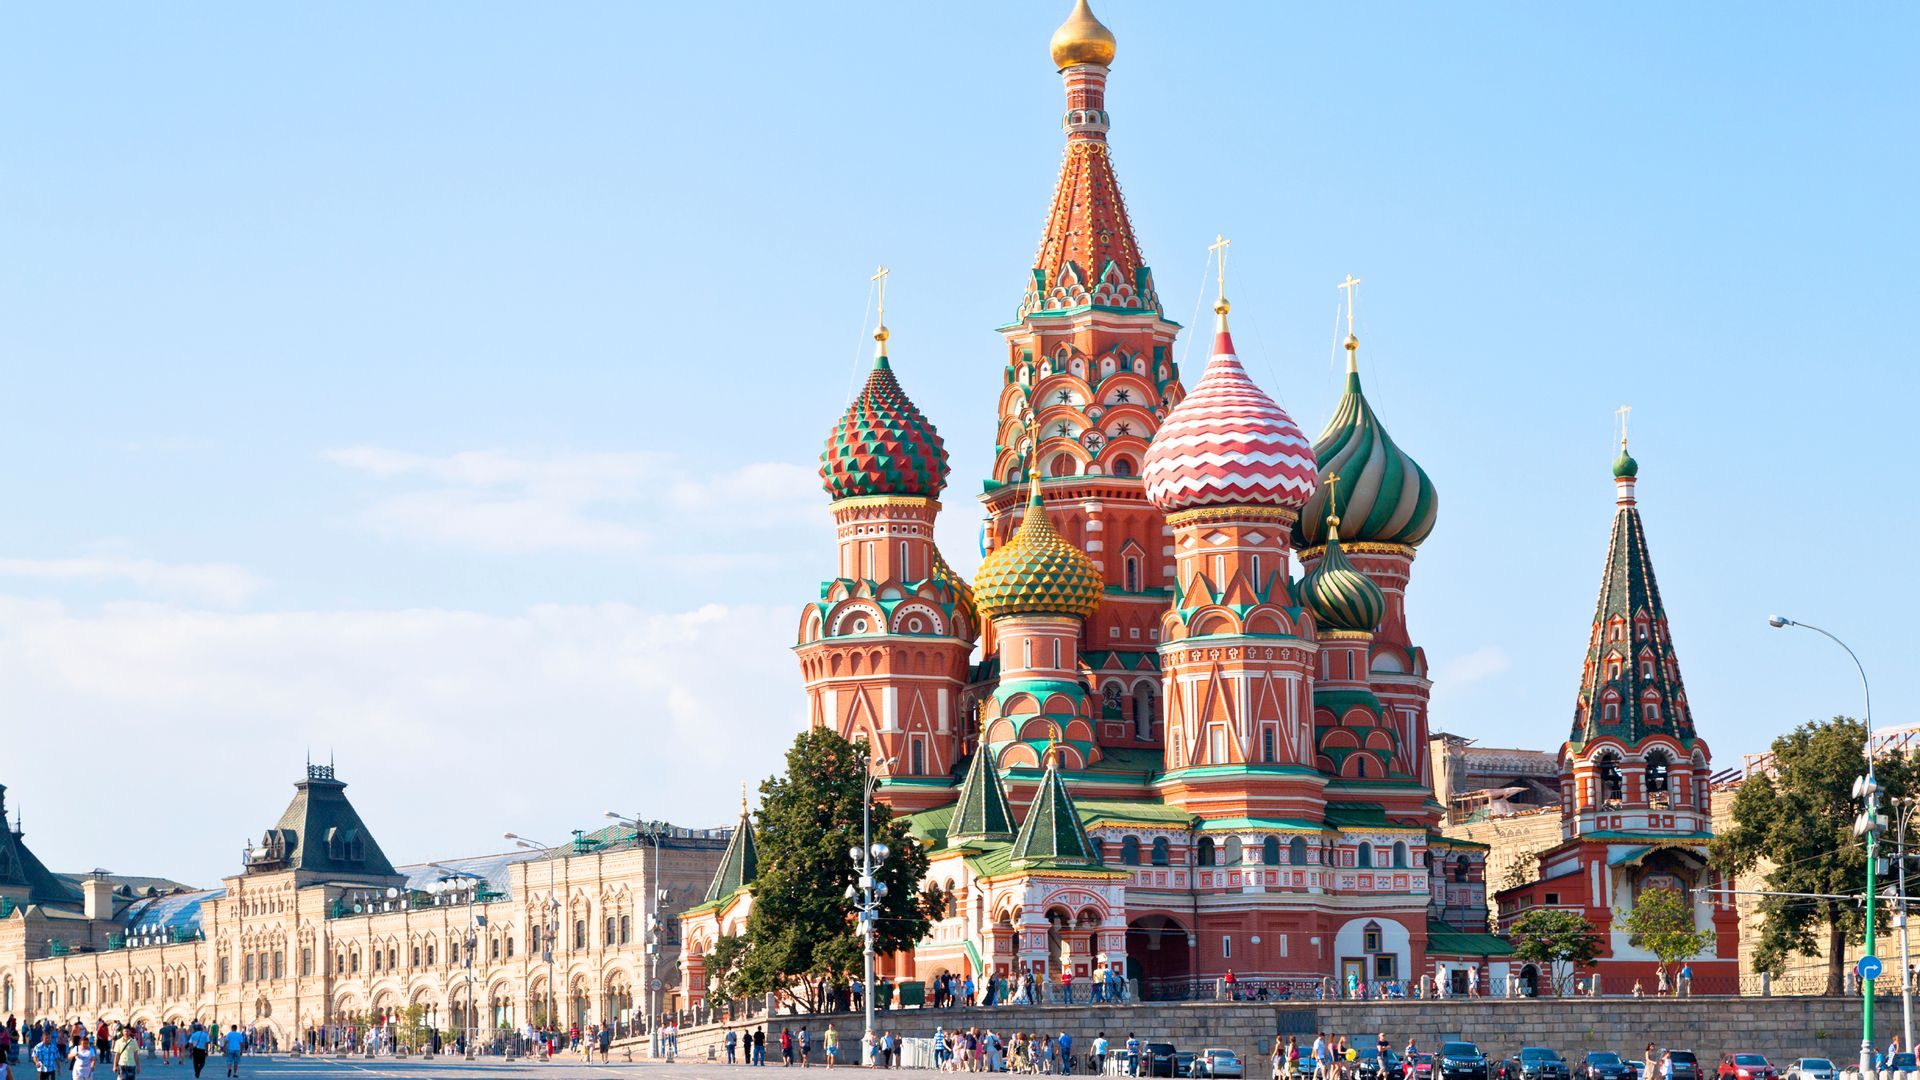 Cathédrale Saint-Basile, Moscou - Russie ©iStock